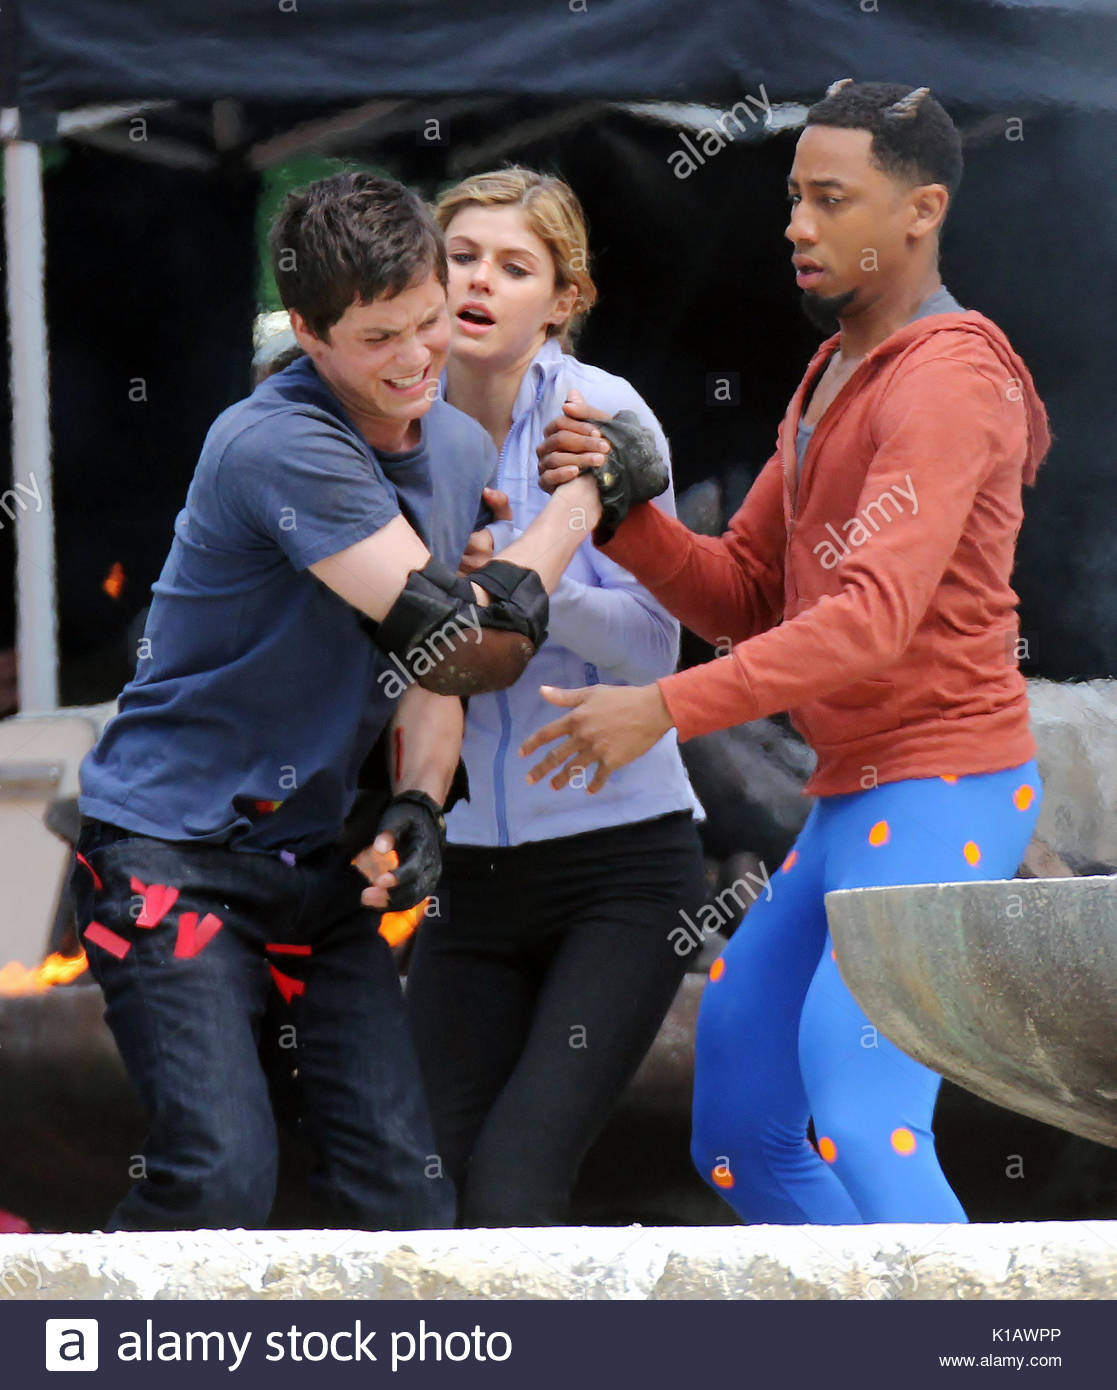 logan lerman alexandra daddario and brandon t jackson